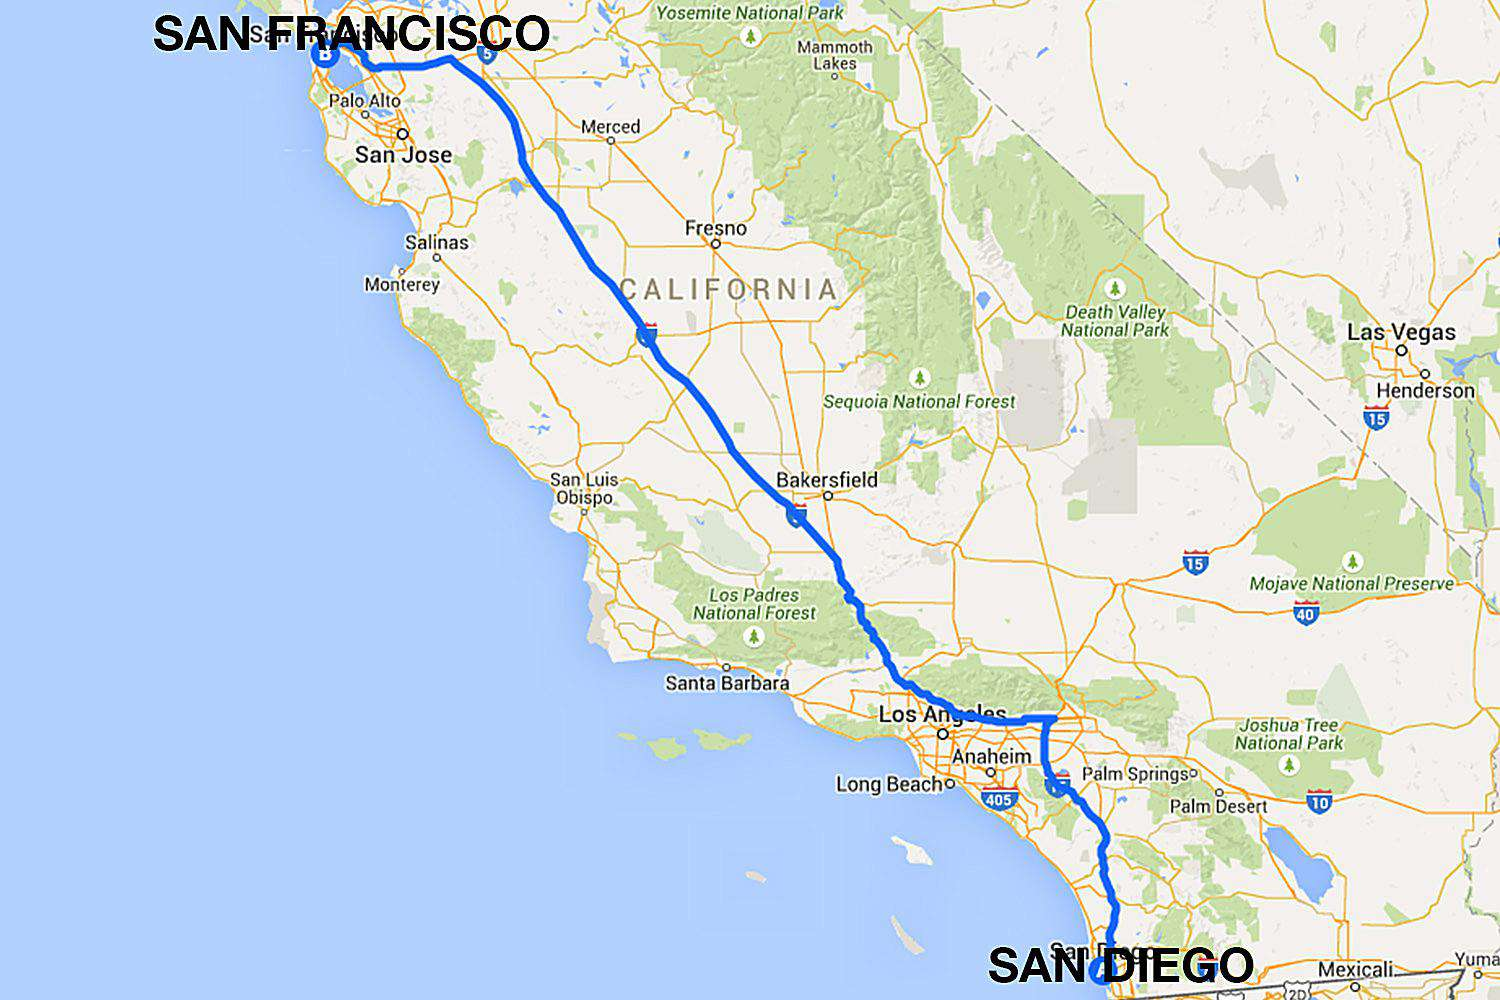 san diego to san francisco: all the ways to travel